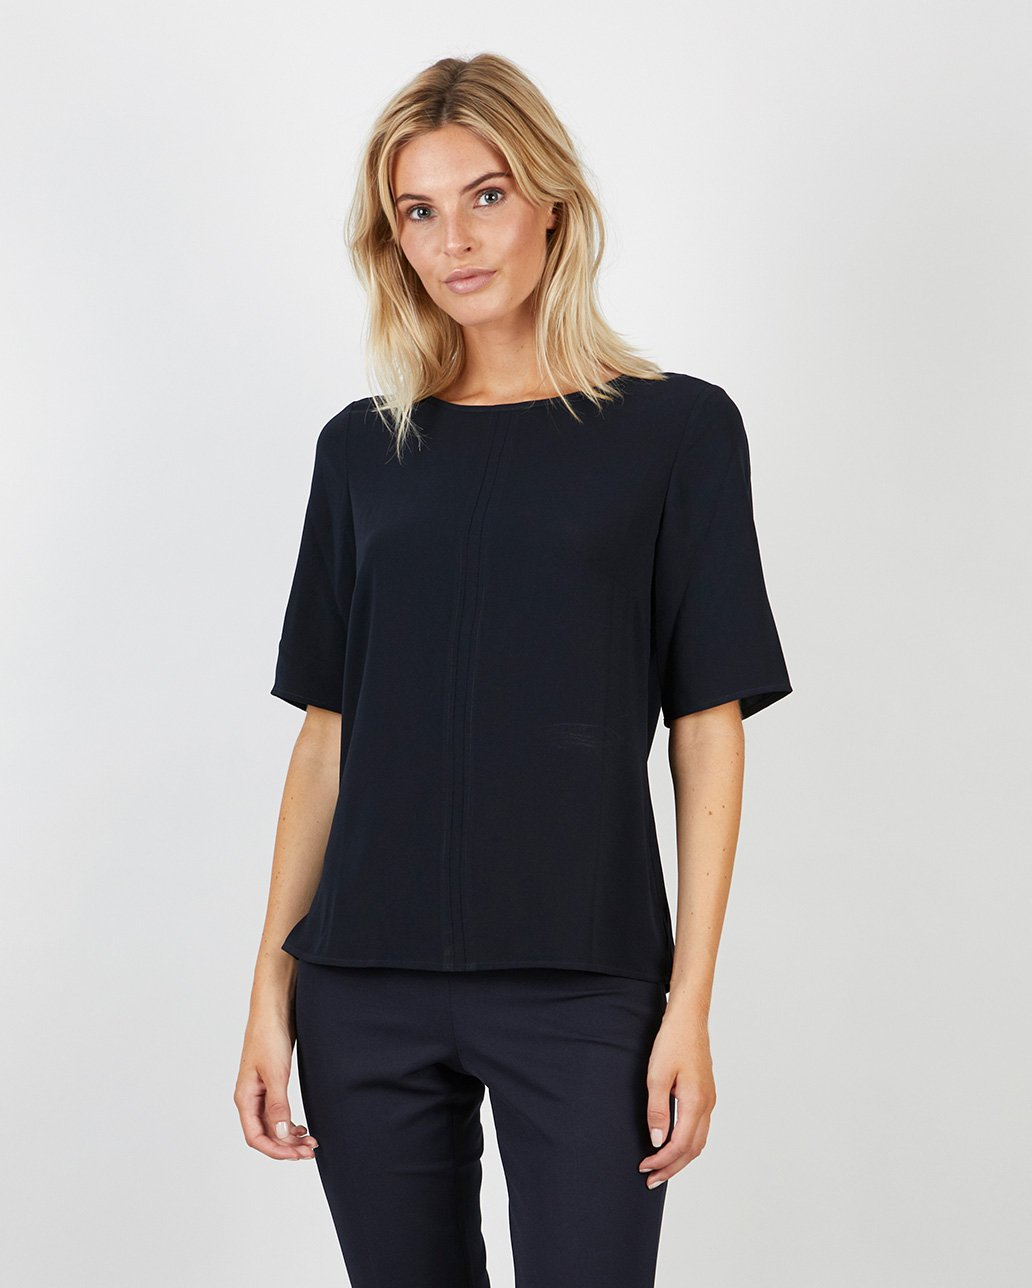 Thelma Top